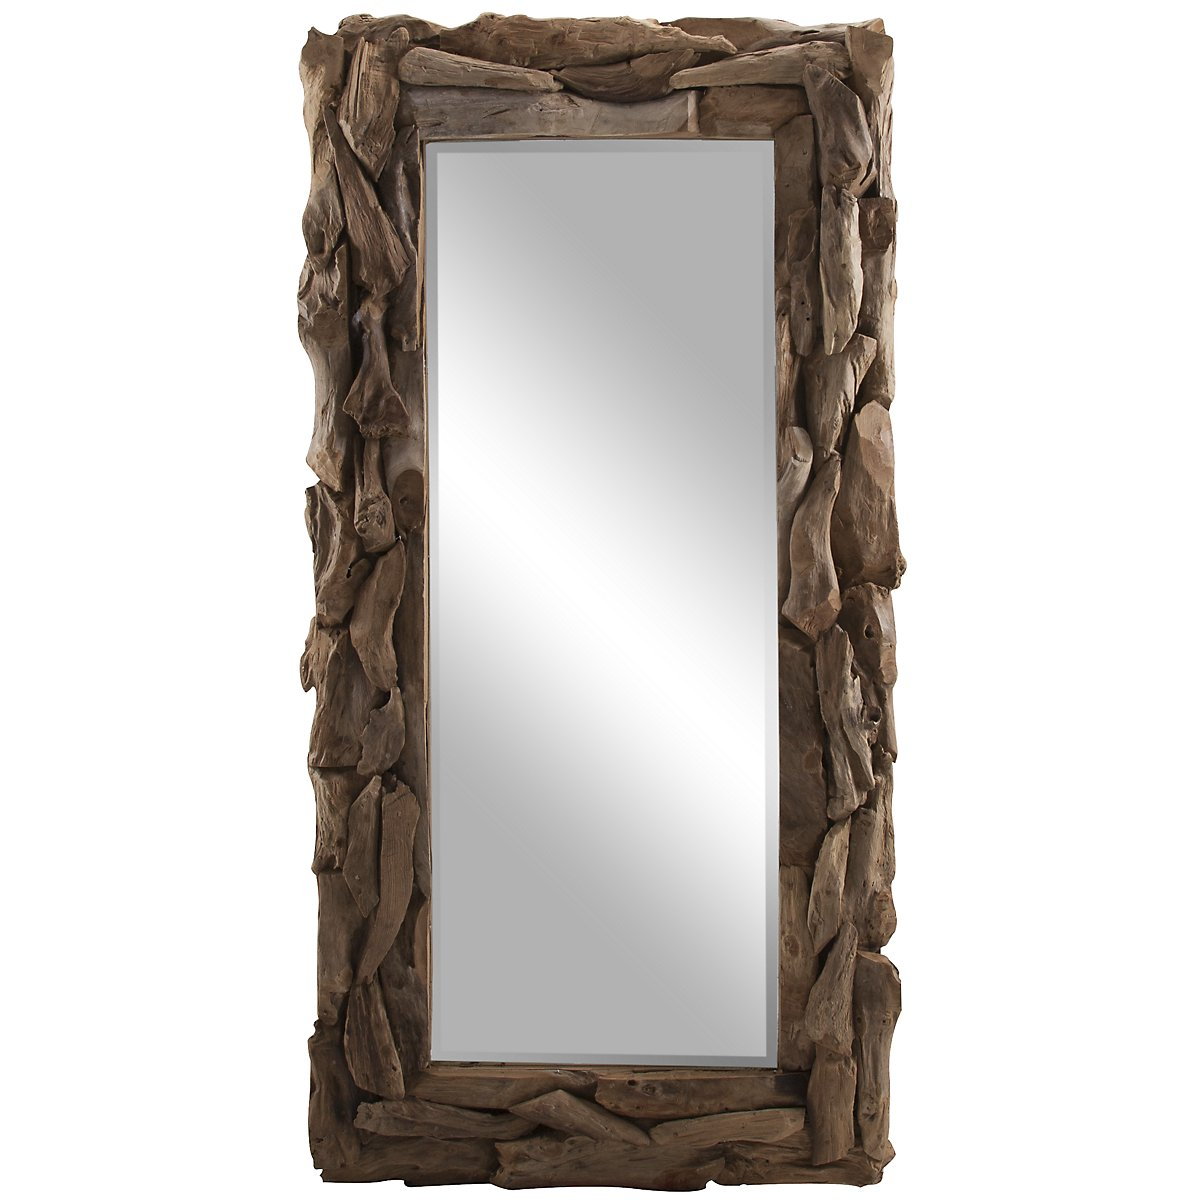 Teak Root Wood Floor Mirror